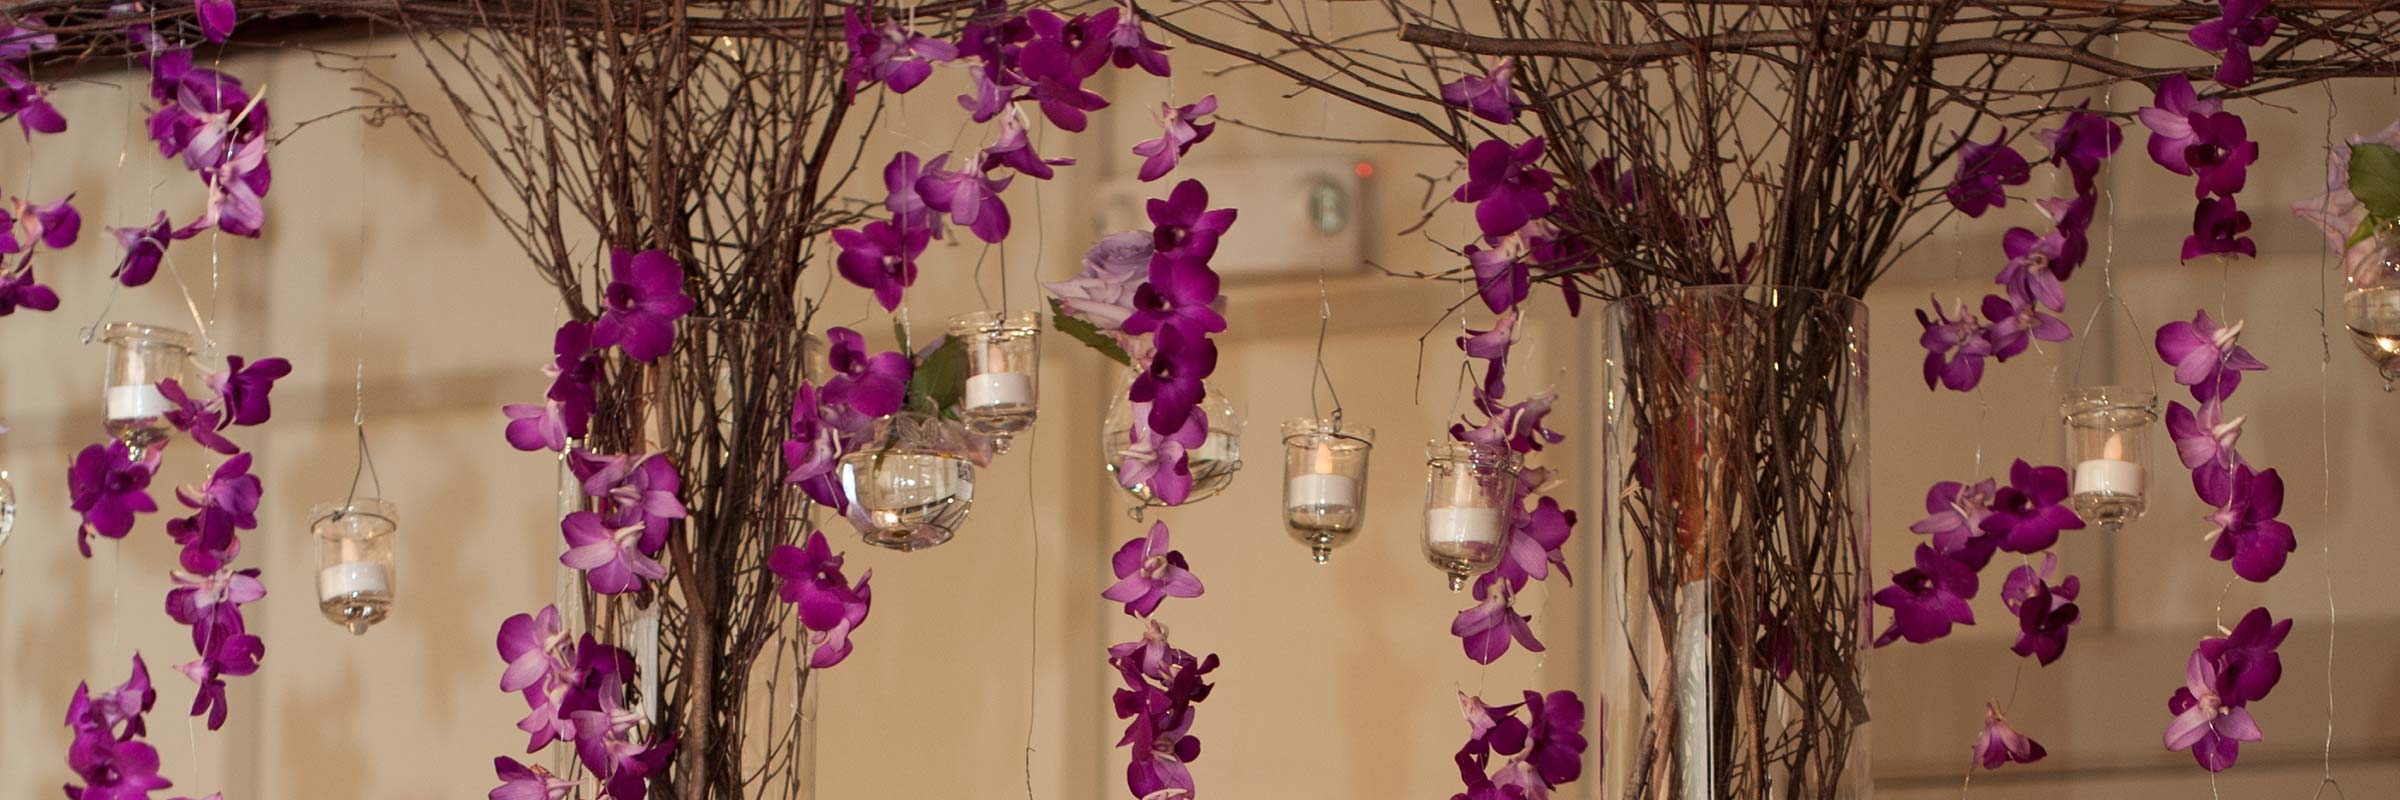 Candles Fresh Purple Hanging Flowers Branches